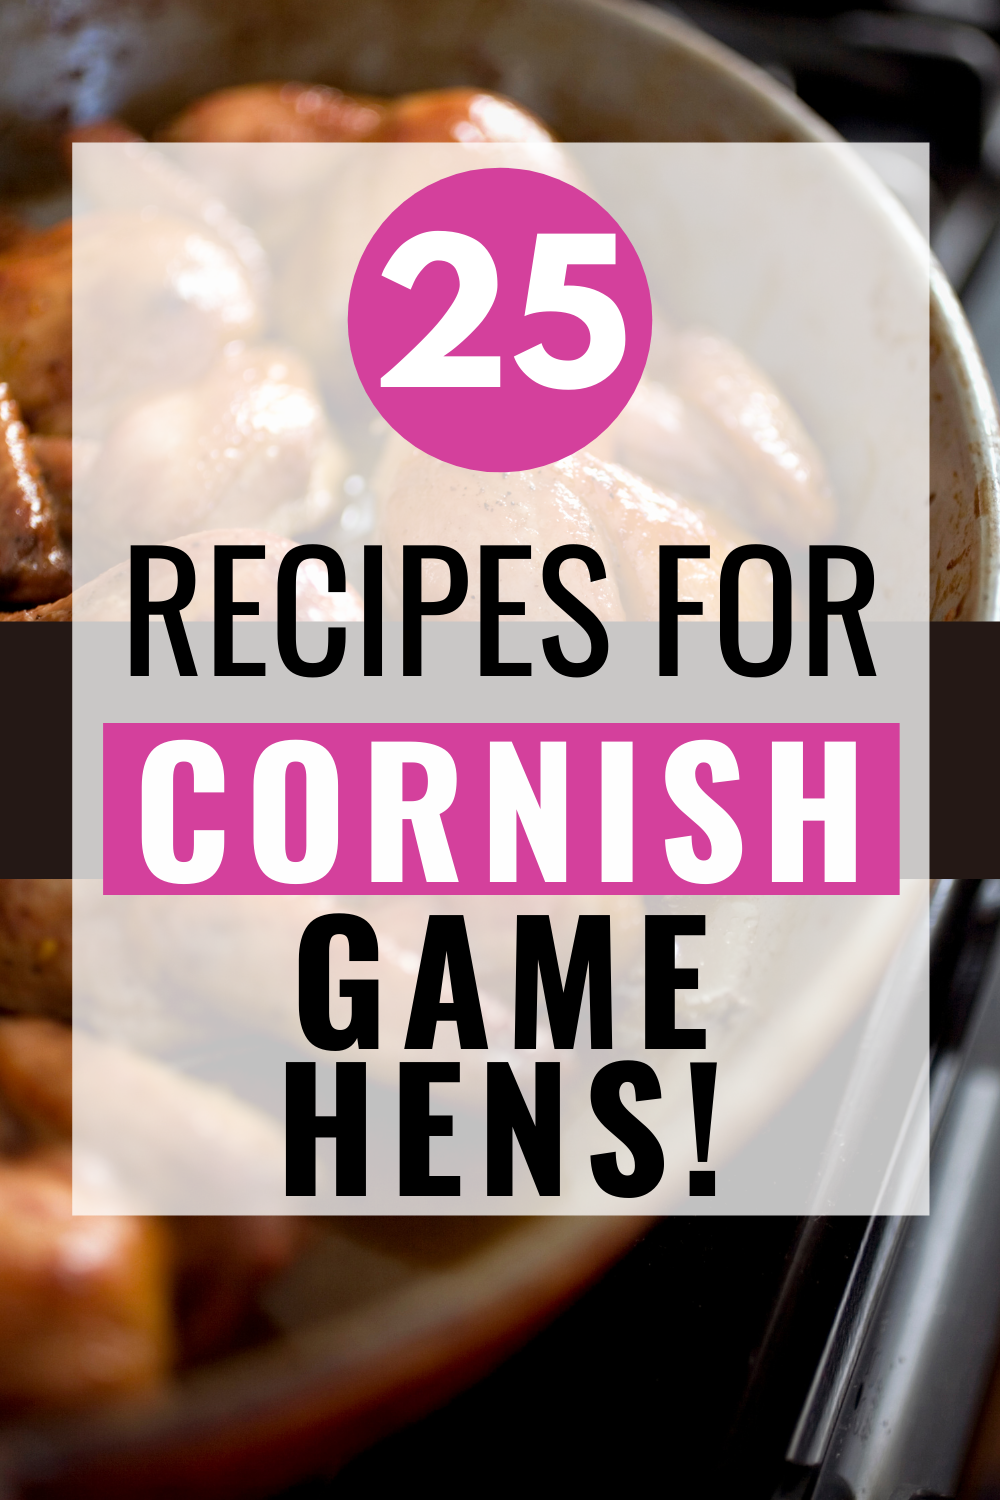 25 Recipes for Cornish Game Hens pin showing the finished Cornish hens with title across the middle